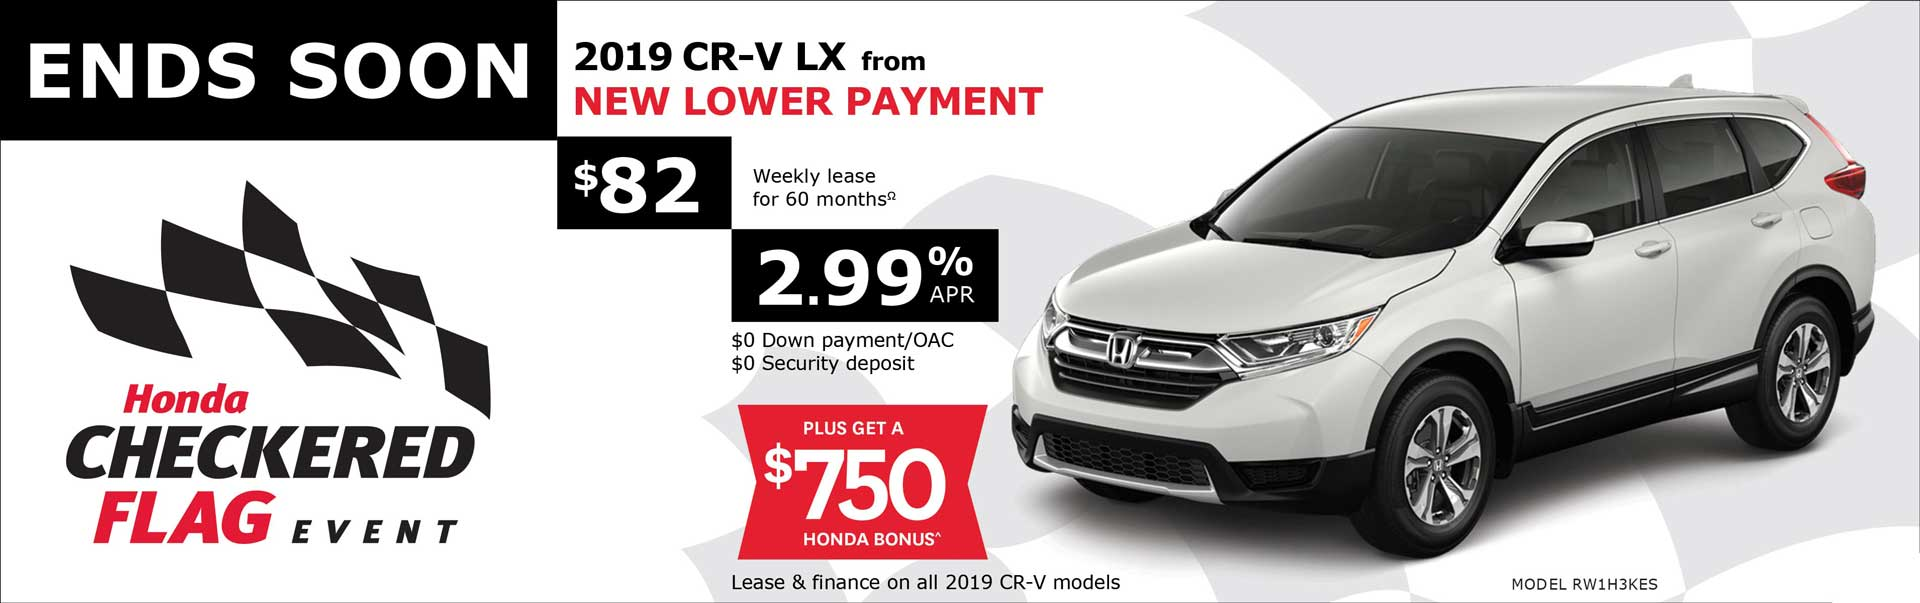 2019 CR-V from $82 Weekly